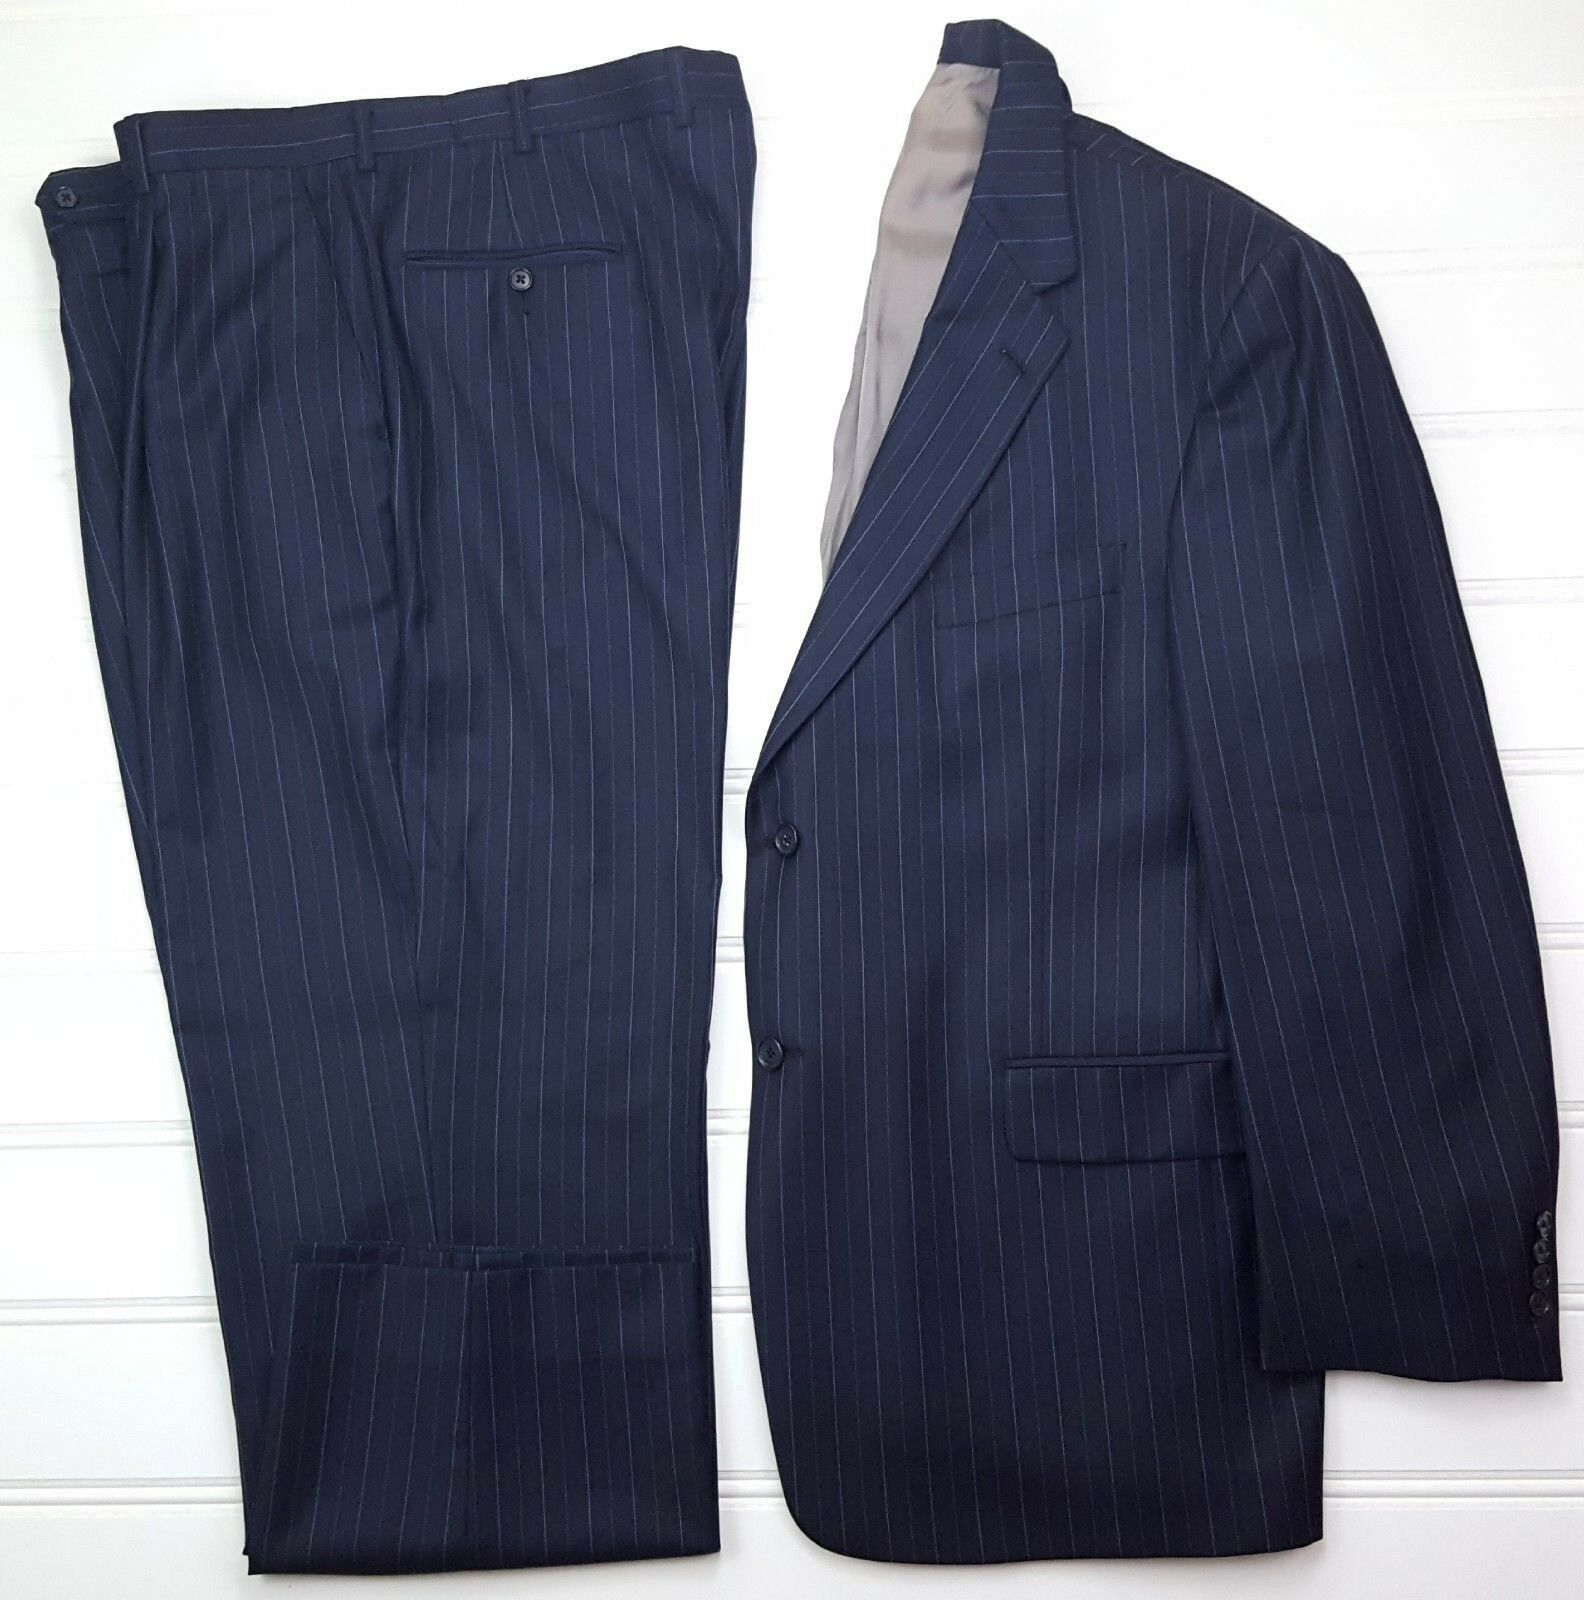 Hart Schaffner Marx bluee Suit 46R Pinstriped Mens 2 Button Lined Vents Wool Size